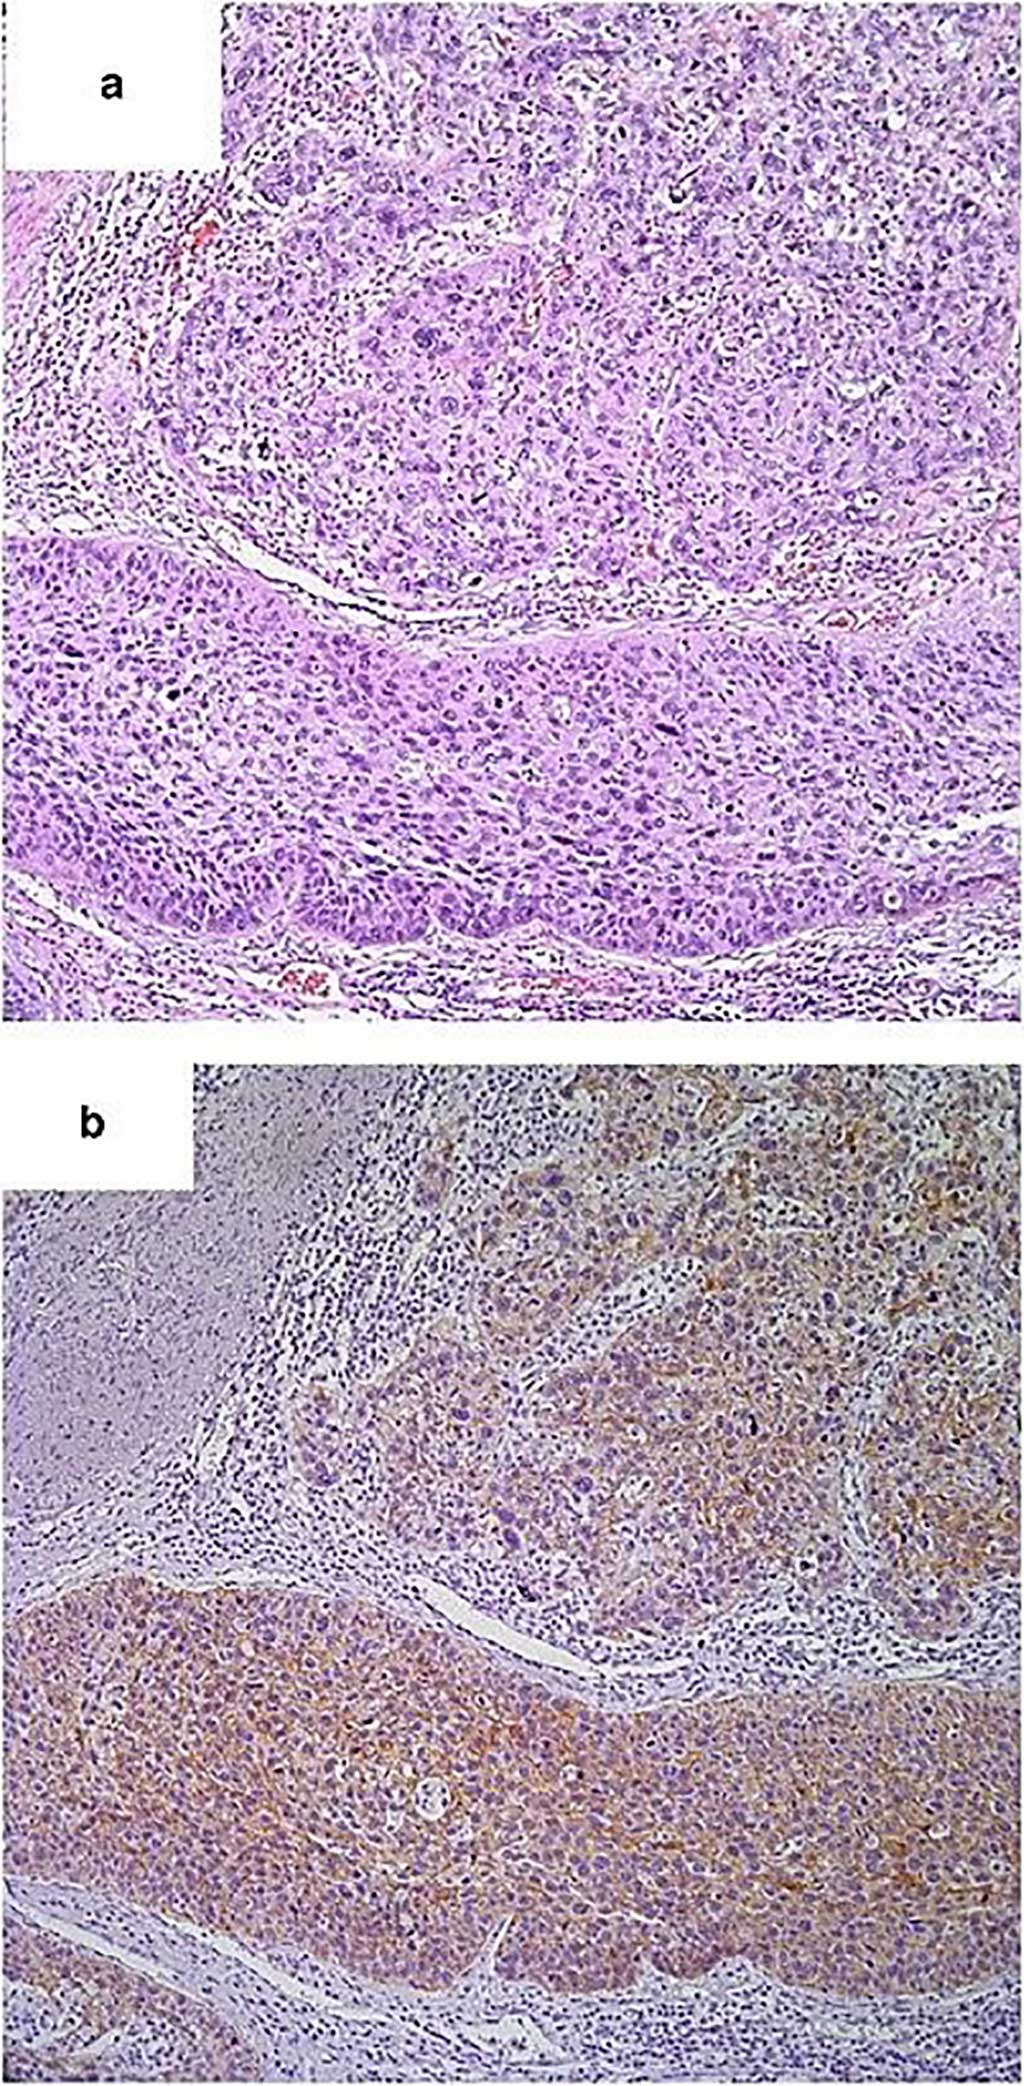 Image: Histopathology of (a) Usual-type high-grade urothelial carcinoma and (b) Positive E-cadherin expression in usual-type high-grade urothelial carcinoma. (Photo courtesy of Emory University School of Medicine)